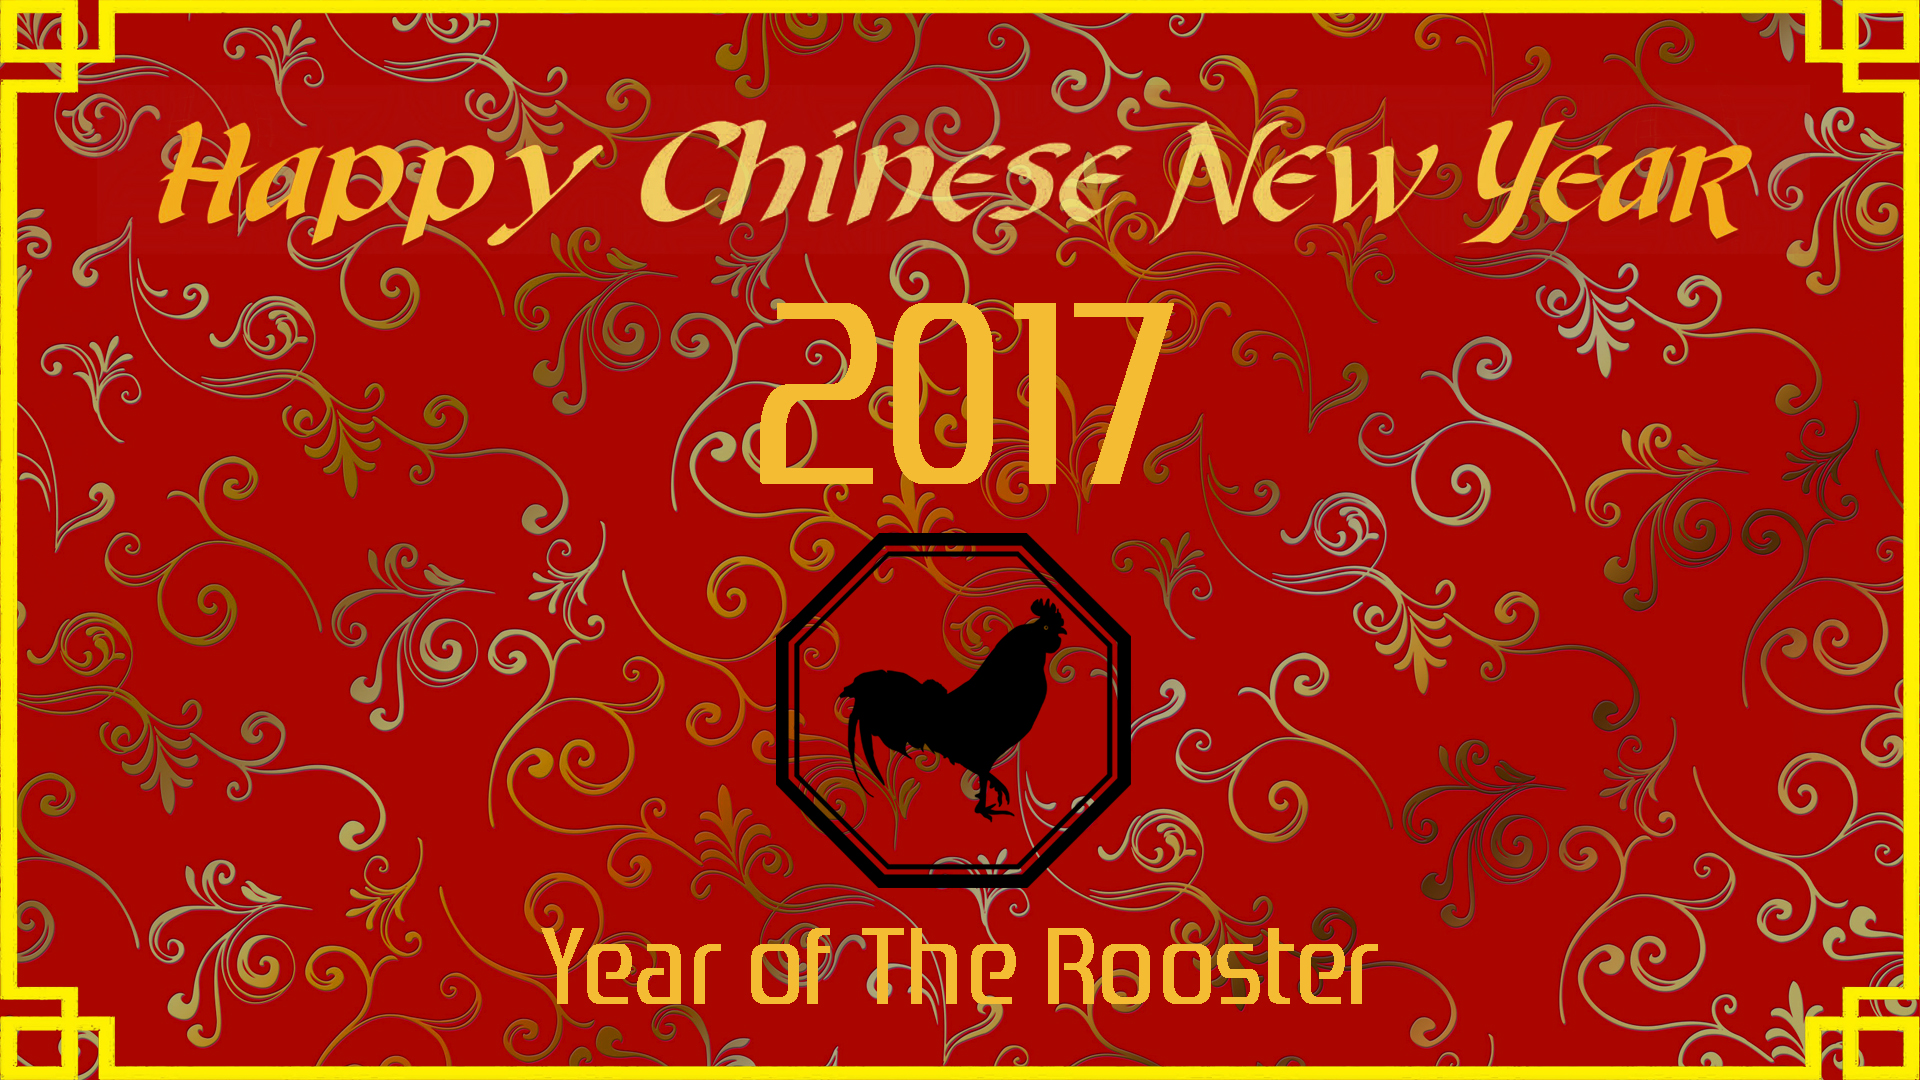 Chinese New Year 2017 Wallpaper – Year of The Rooster | HD ...